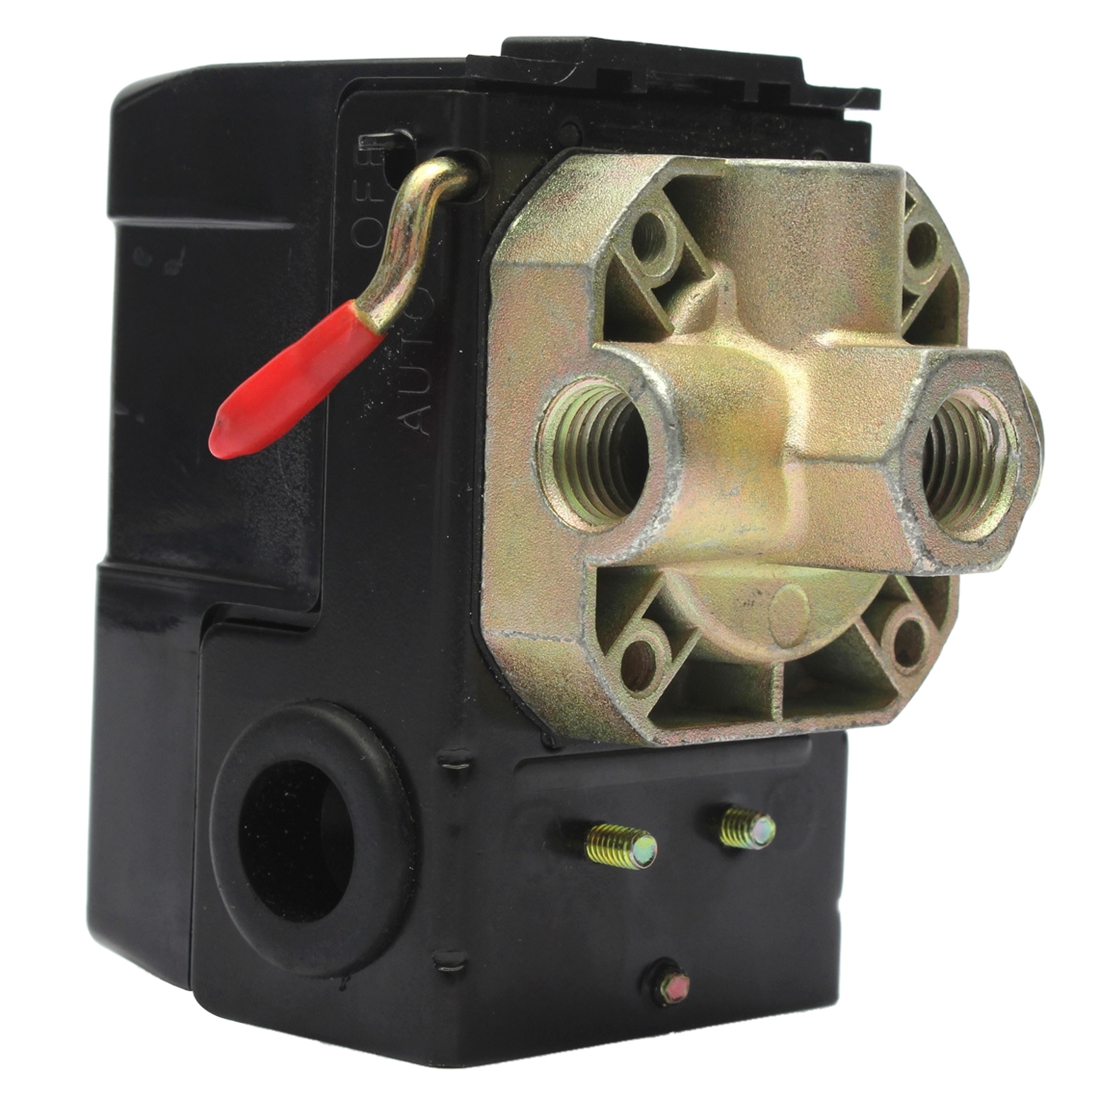 90-125PSI 4 Port 26 AMP Pressure Switch Control Valve Air Compressor Heavy Duty Black siemens eh645bb17e